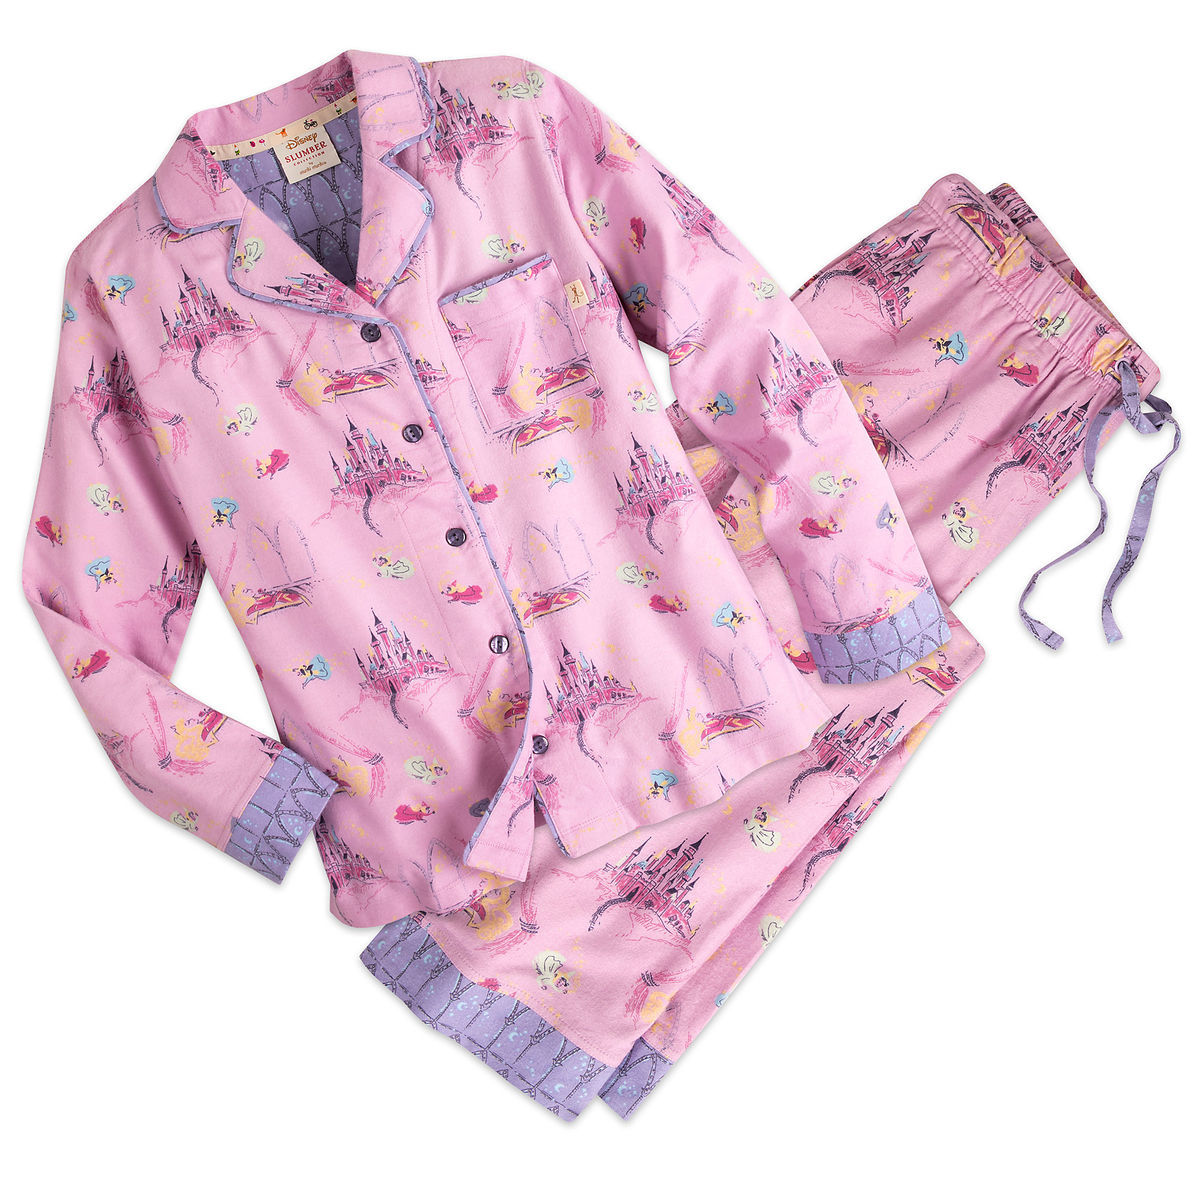 Product Image of Sleeping Beauty Flannel Pajama Set for Women by Munki Munki®    1 d25f831b1